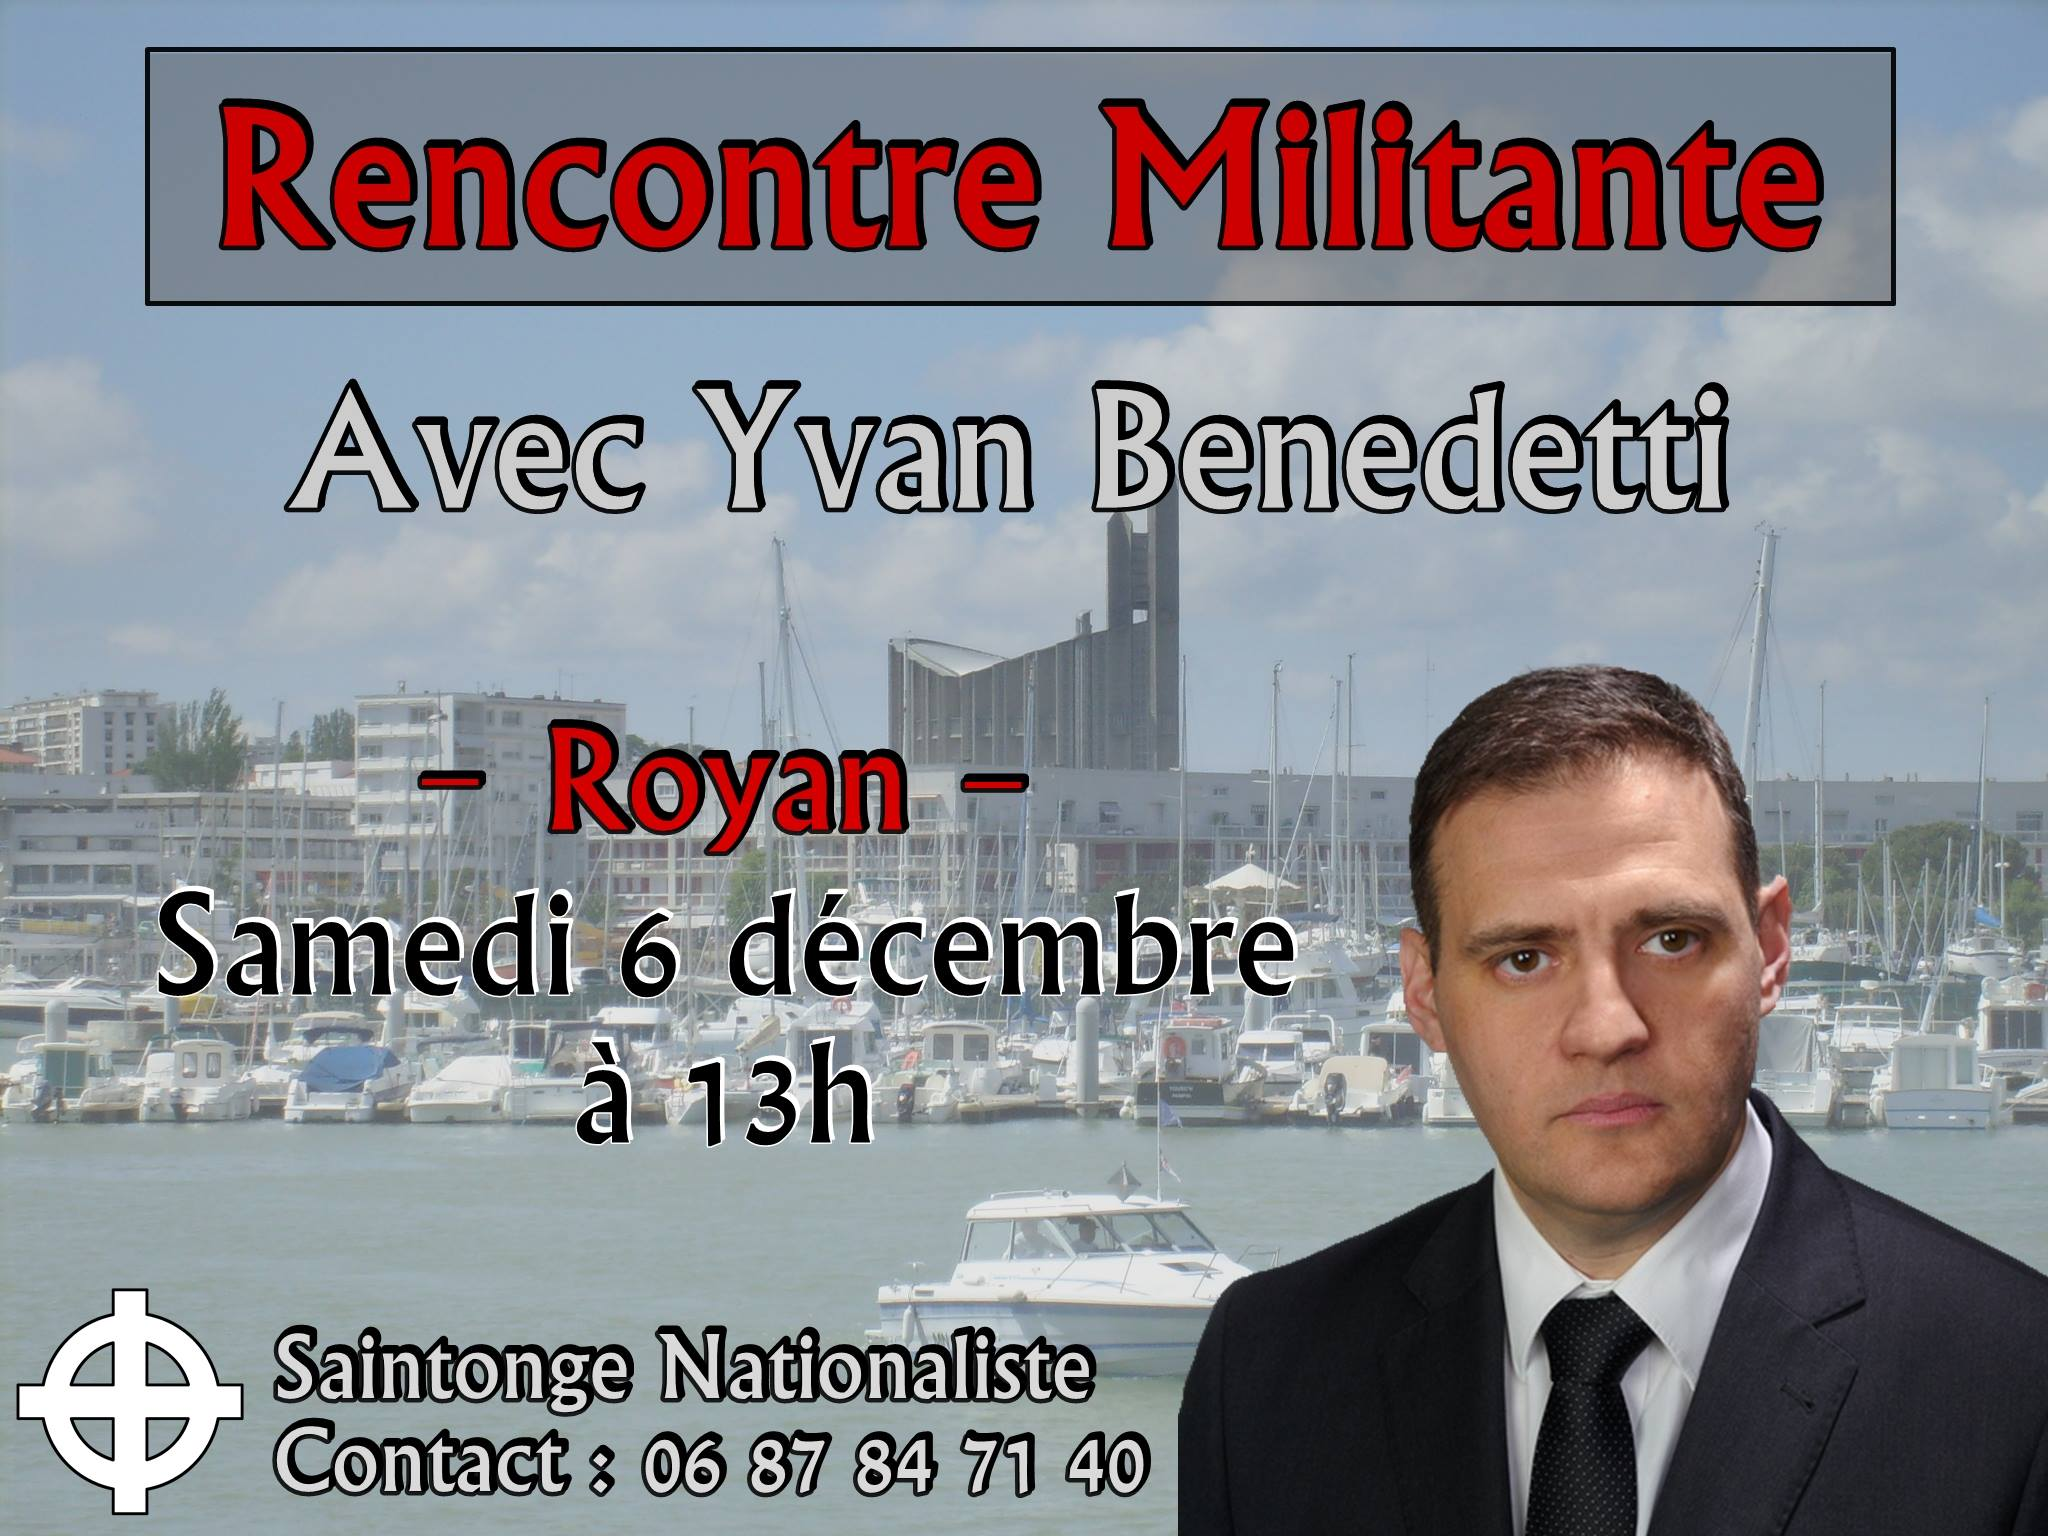 Club rencontre royan